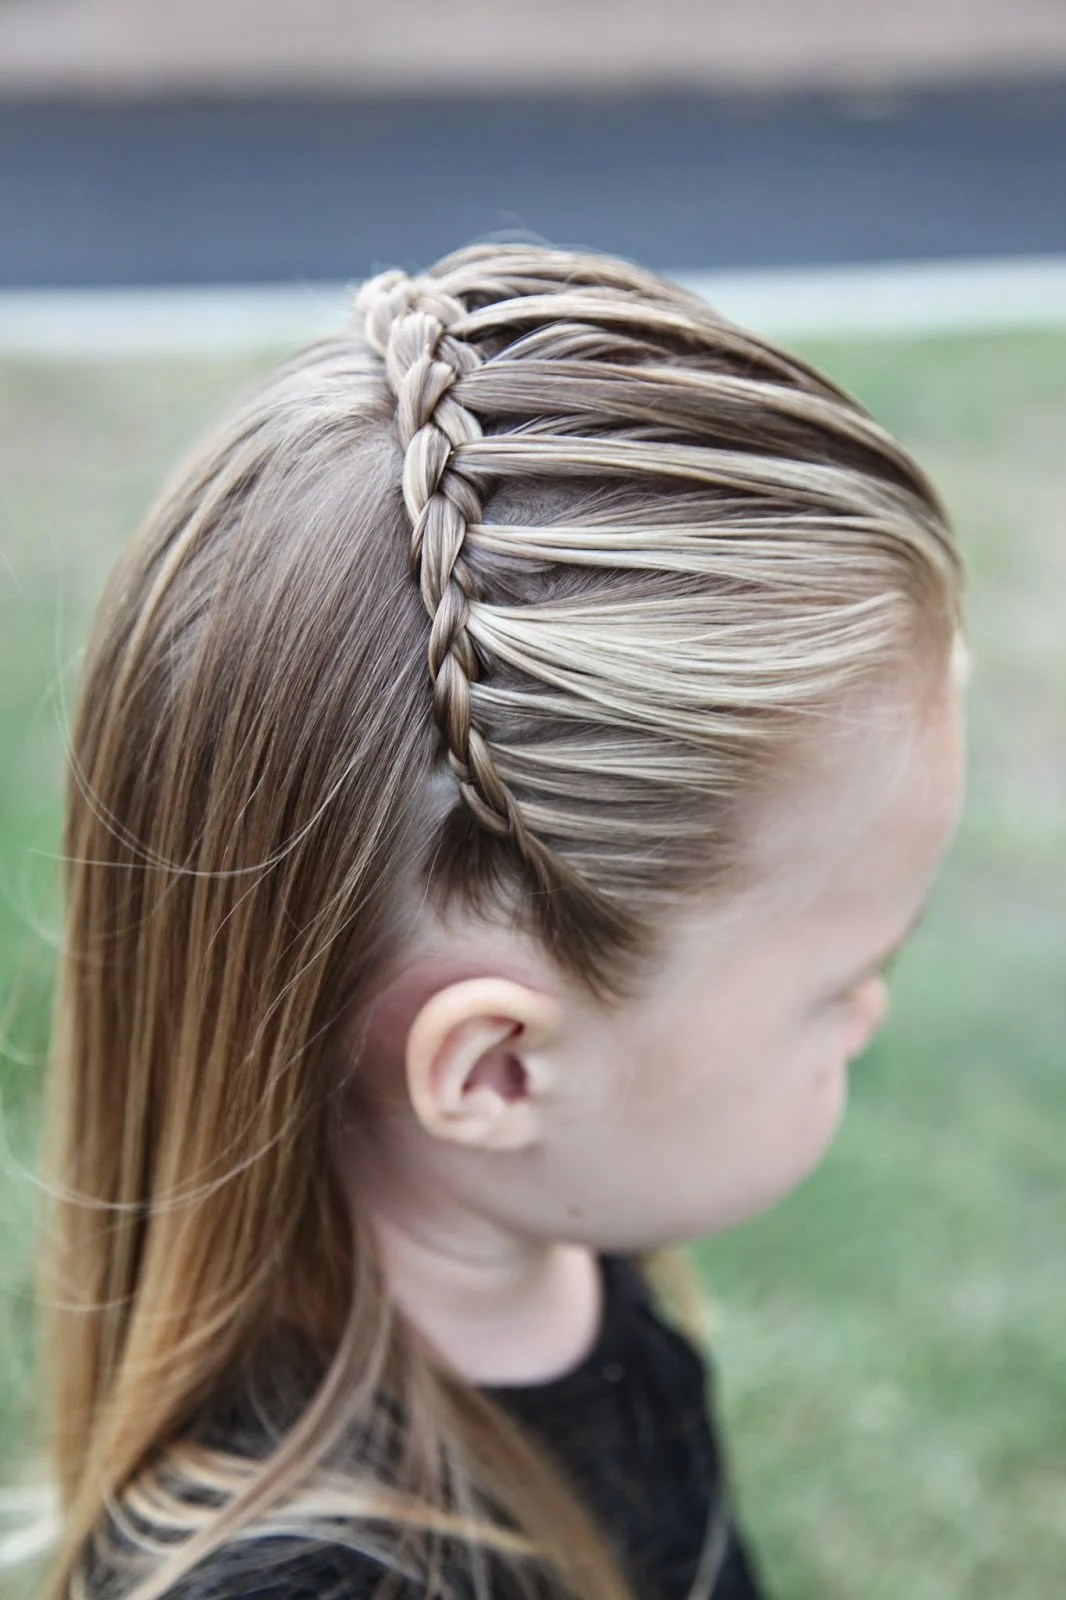 25 Little Girl Hairstyles You Can Do YOURSELF!